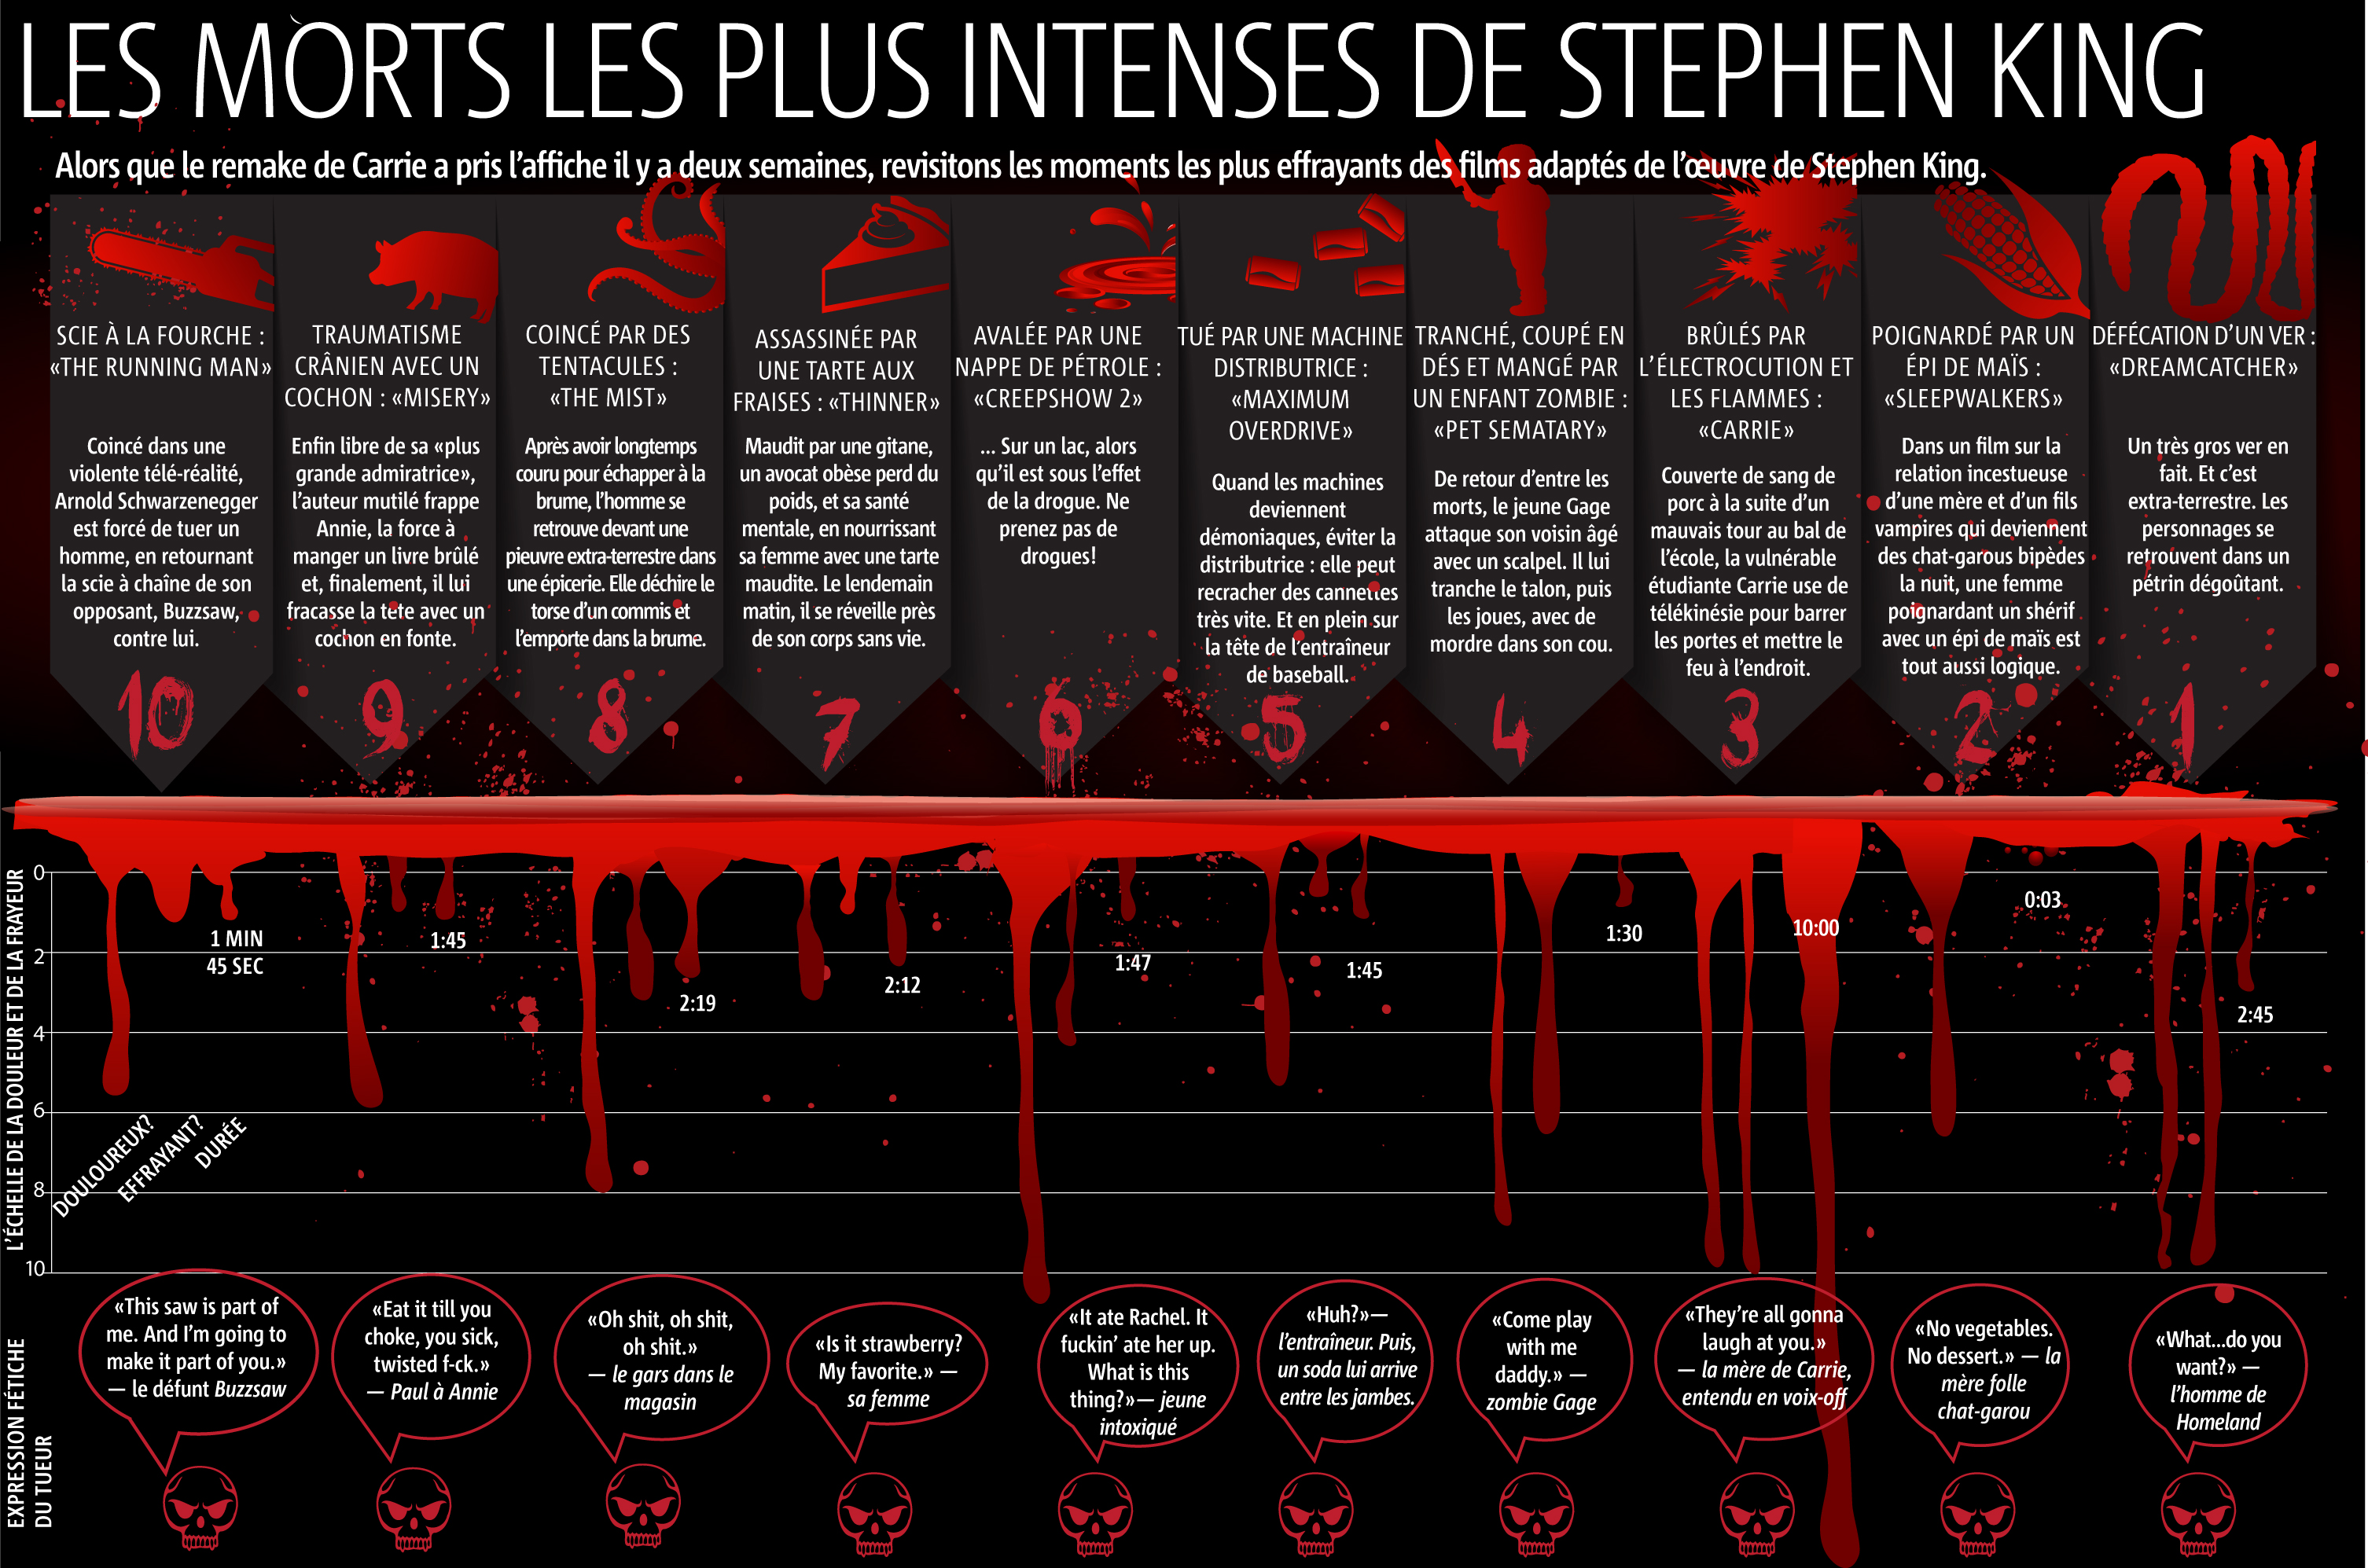 stephen-king-morts-intenses-halloween